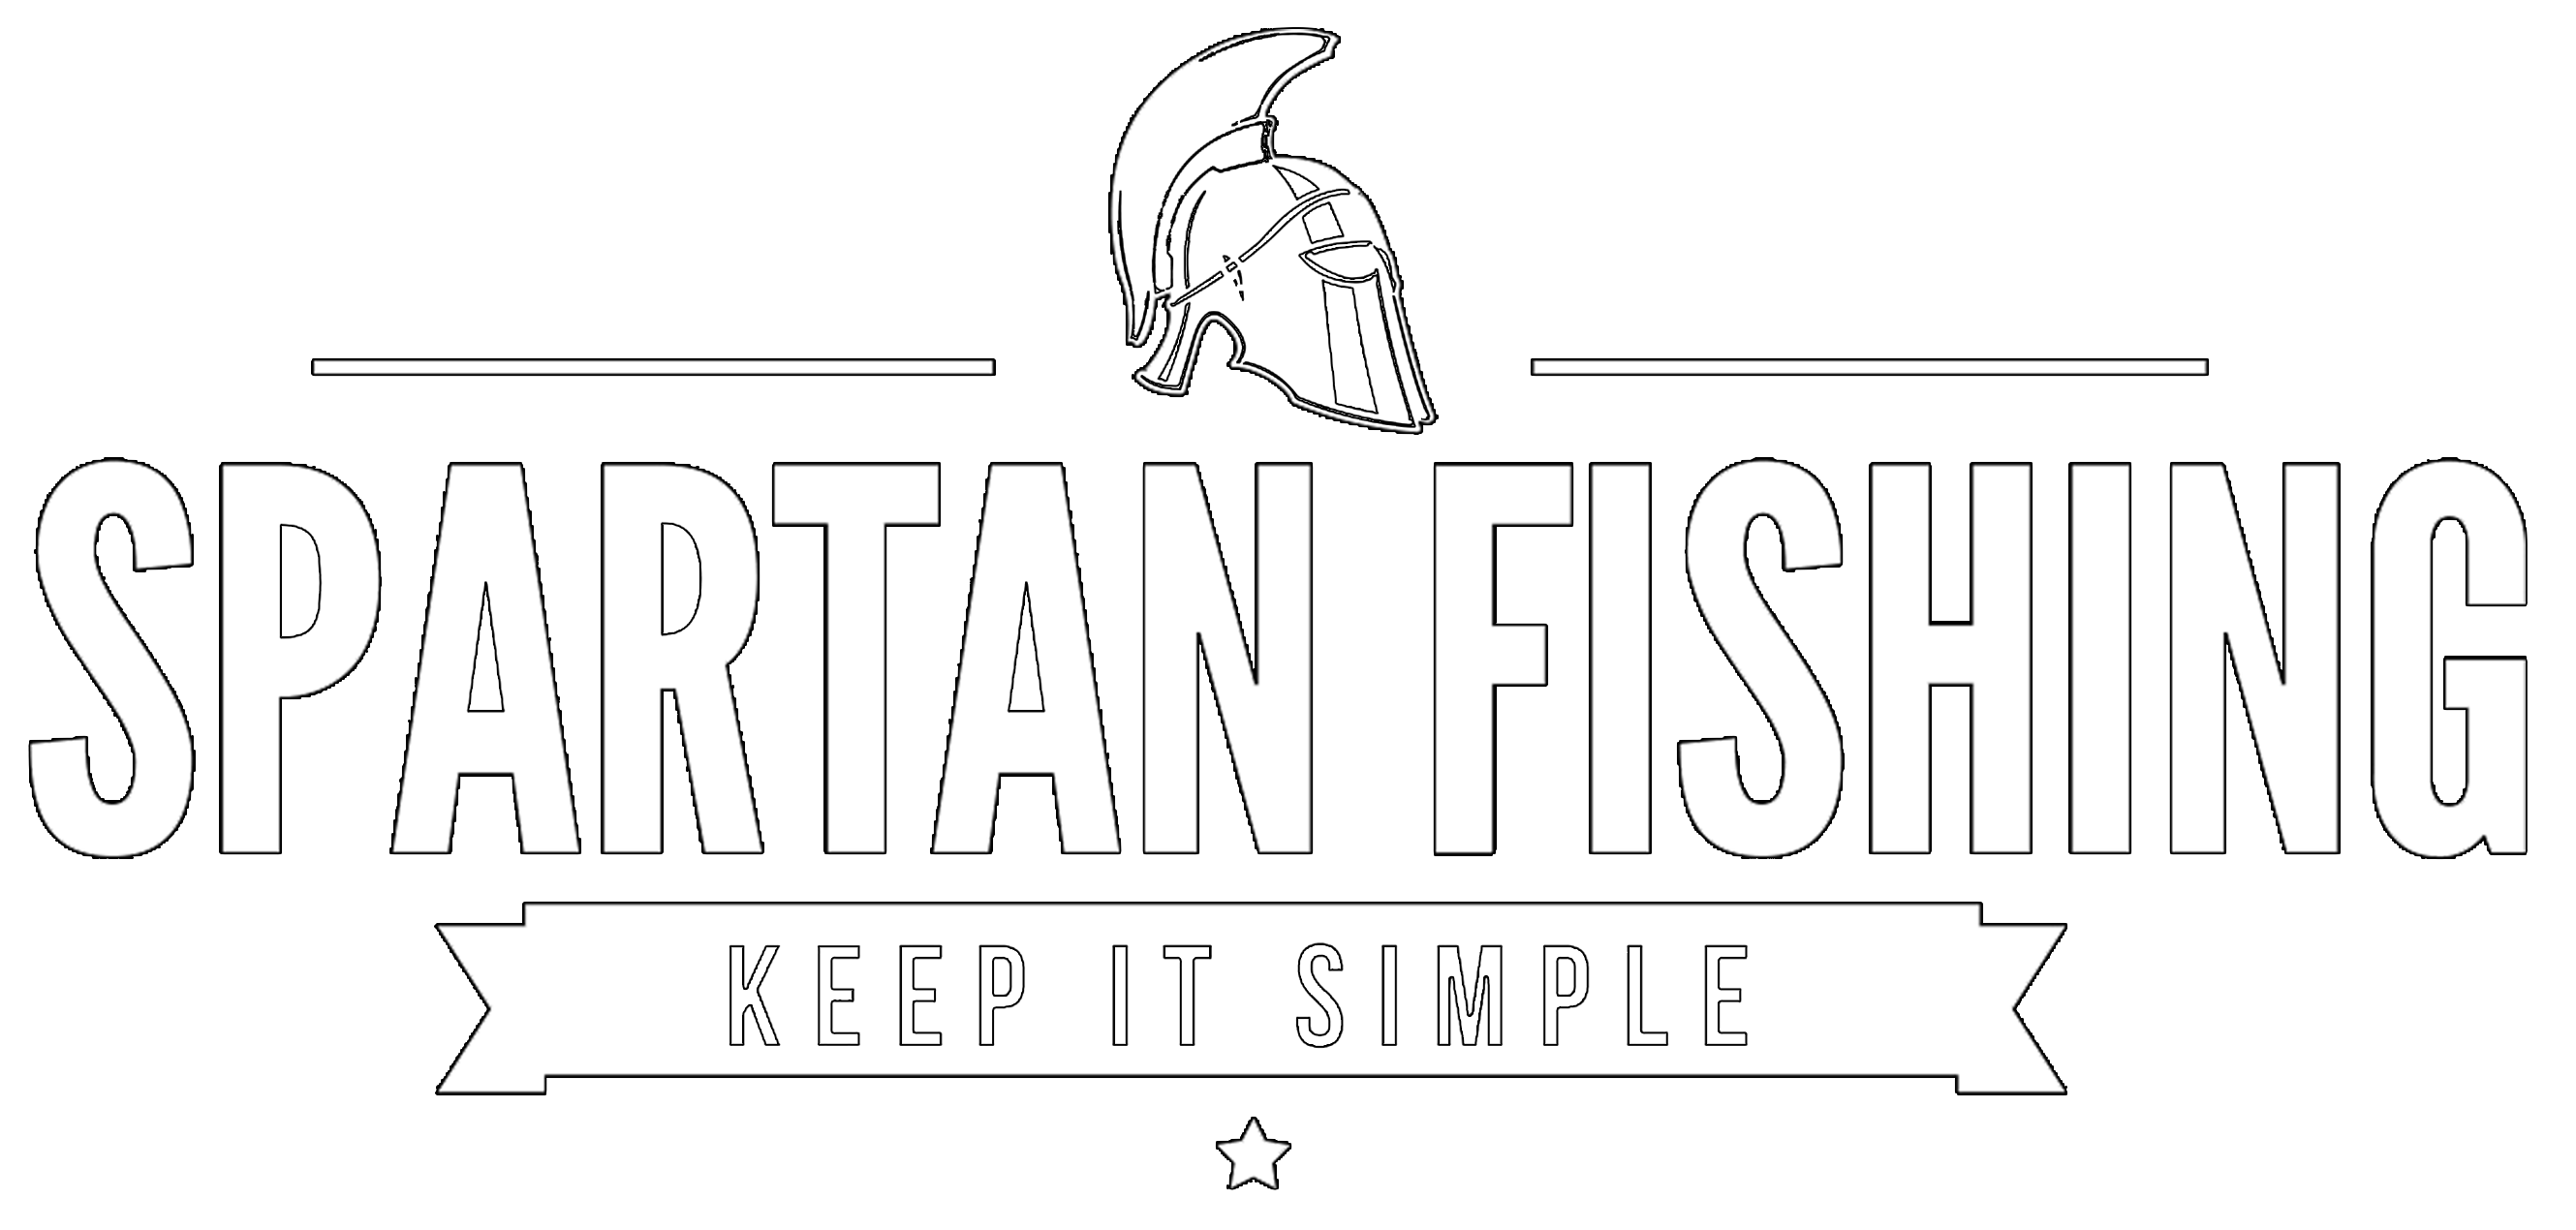 spartan-fishing.com